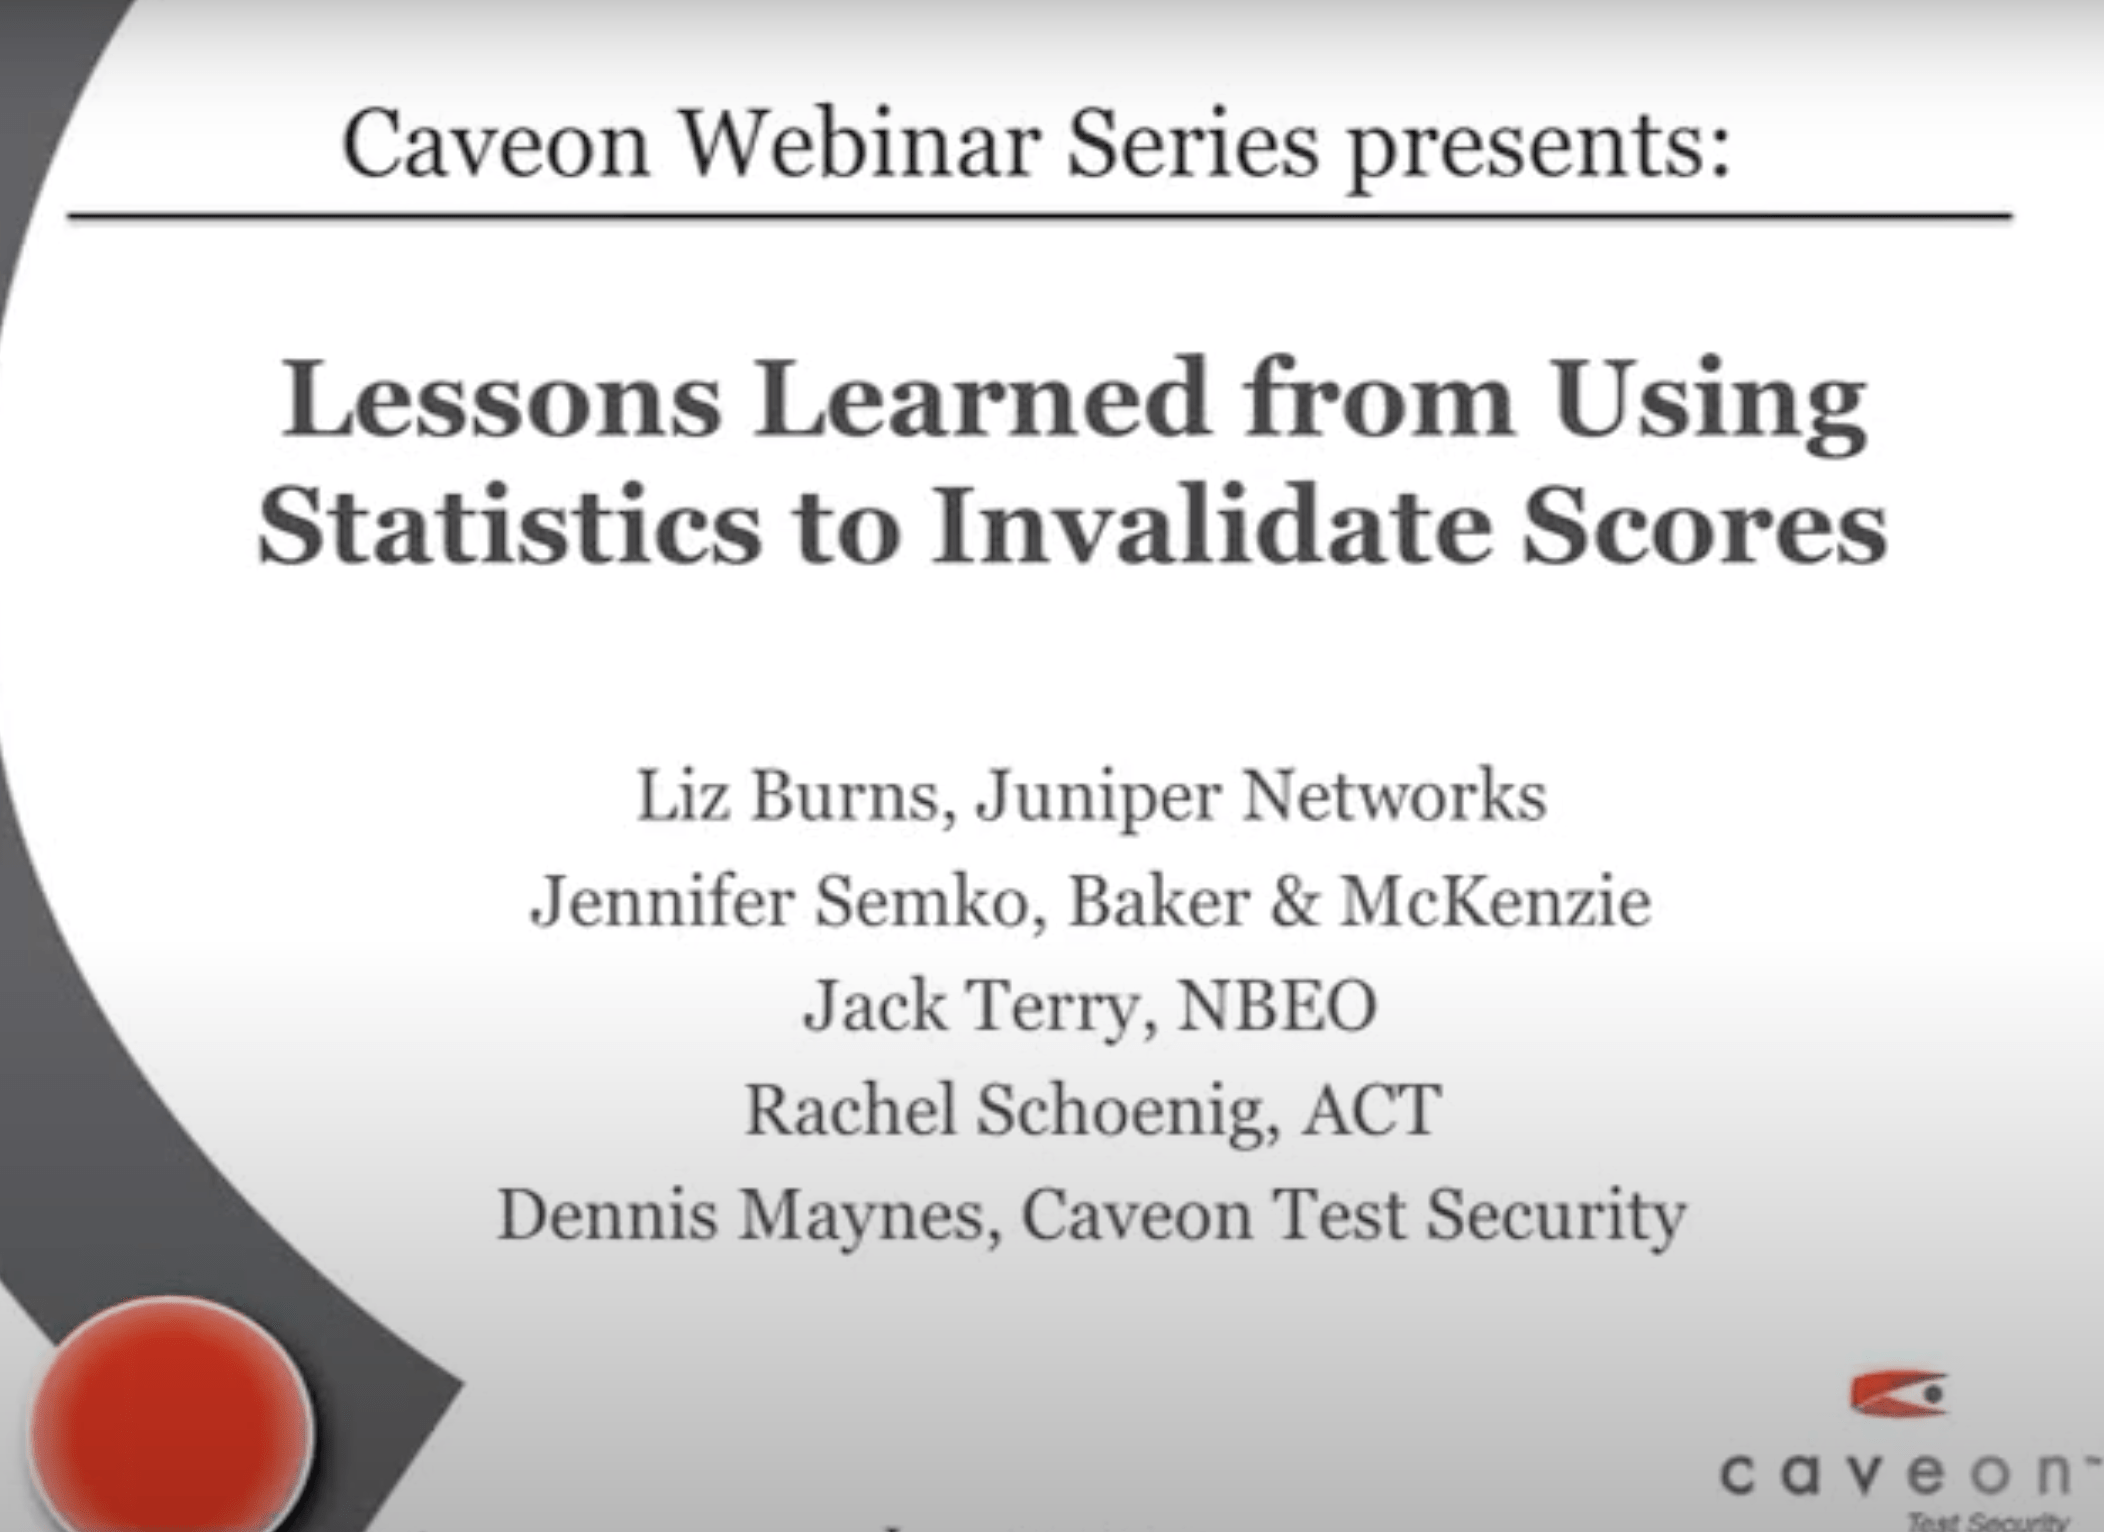 Lessons Learned from Using Statistics to Invalidate Scores